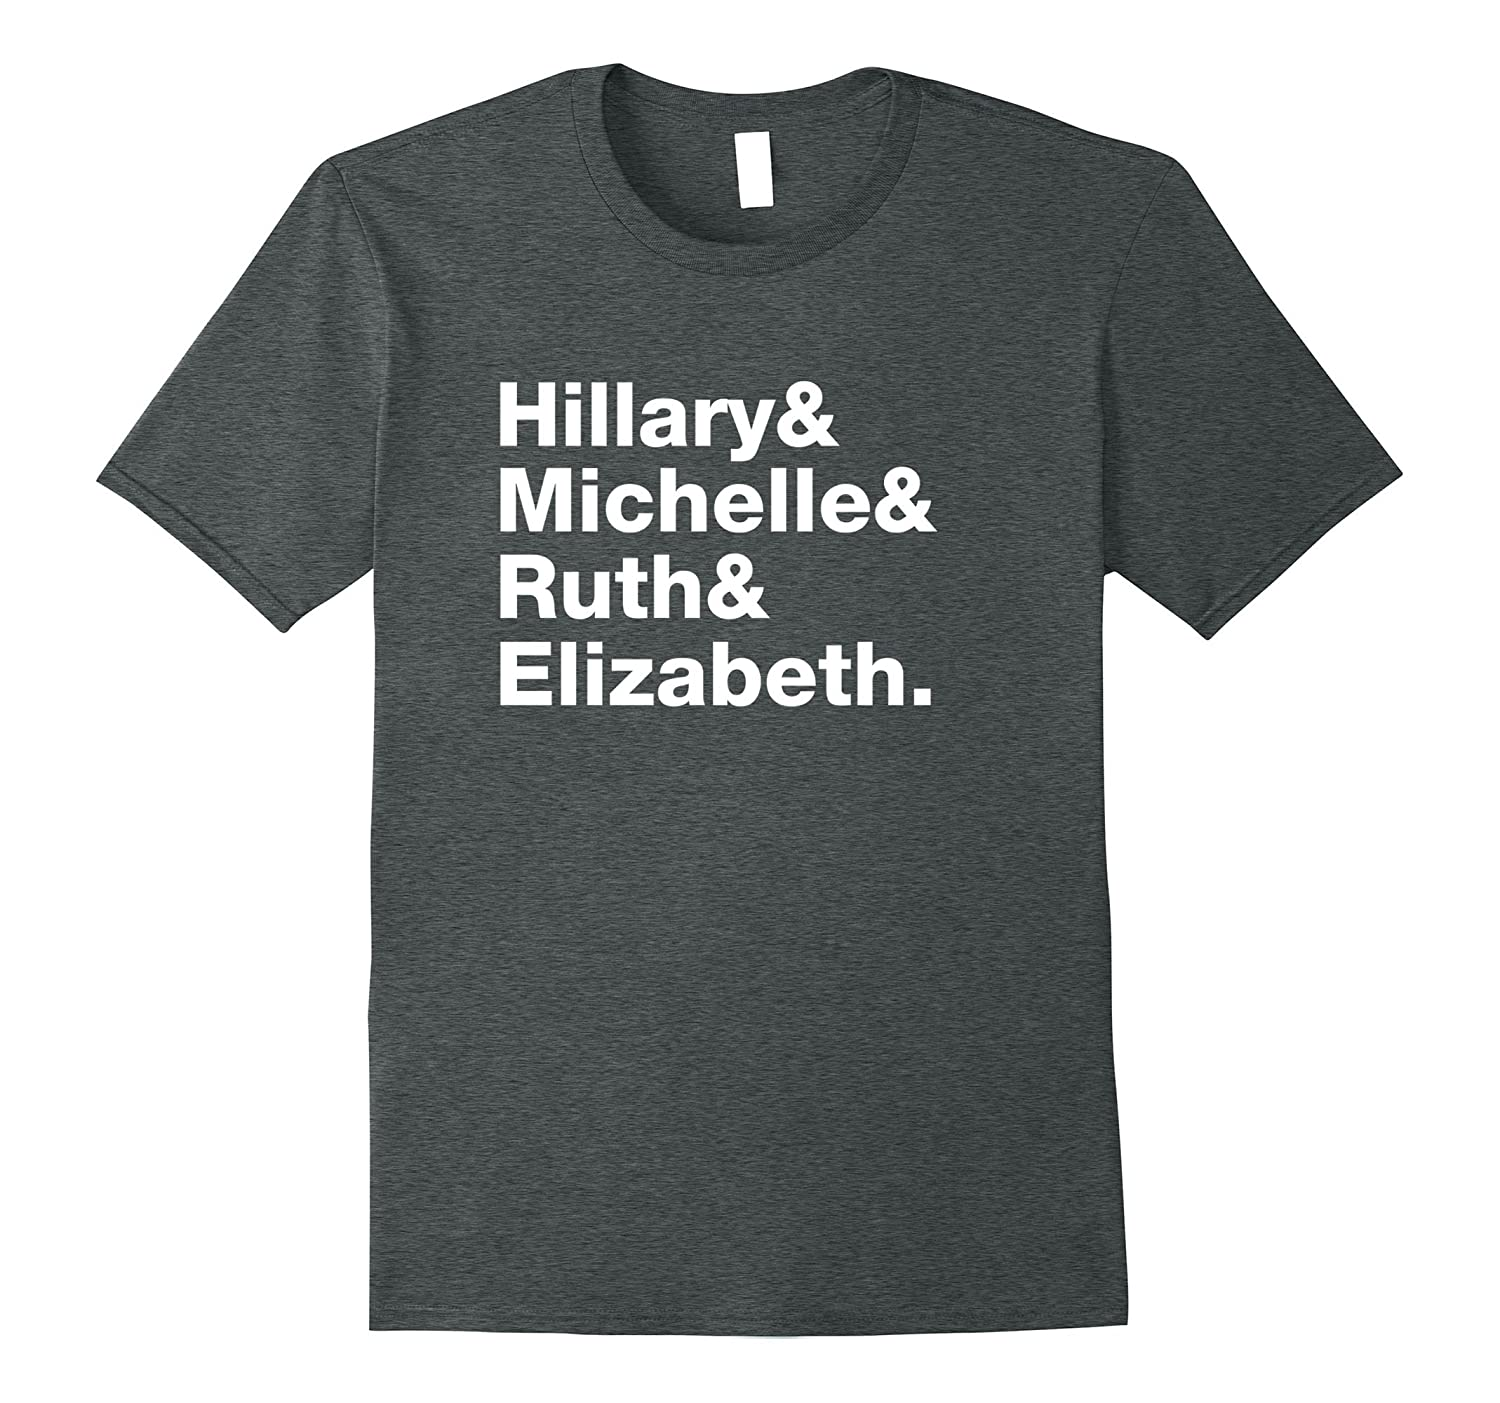 Hillary Clinton Michelle Obama RBG Elizabeth Warren T-Shirt